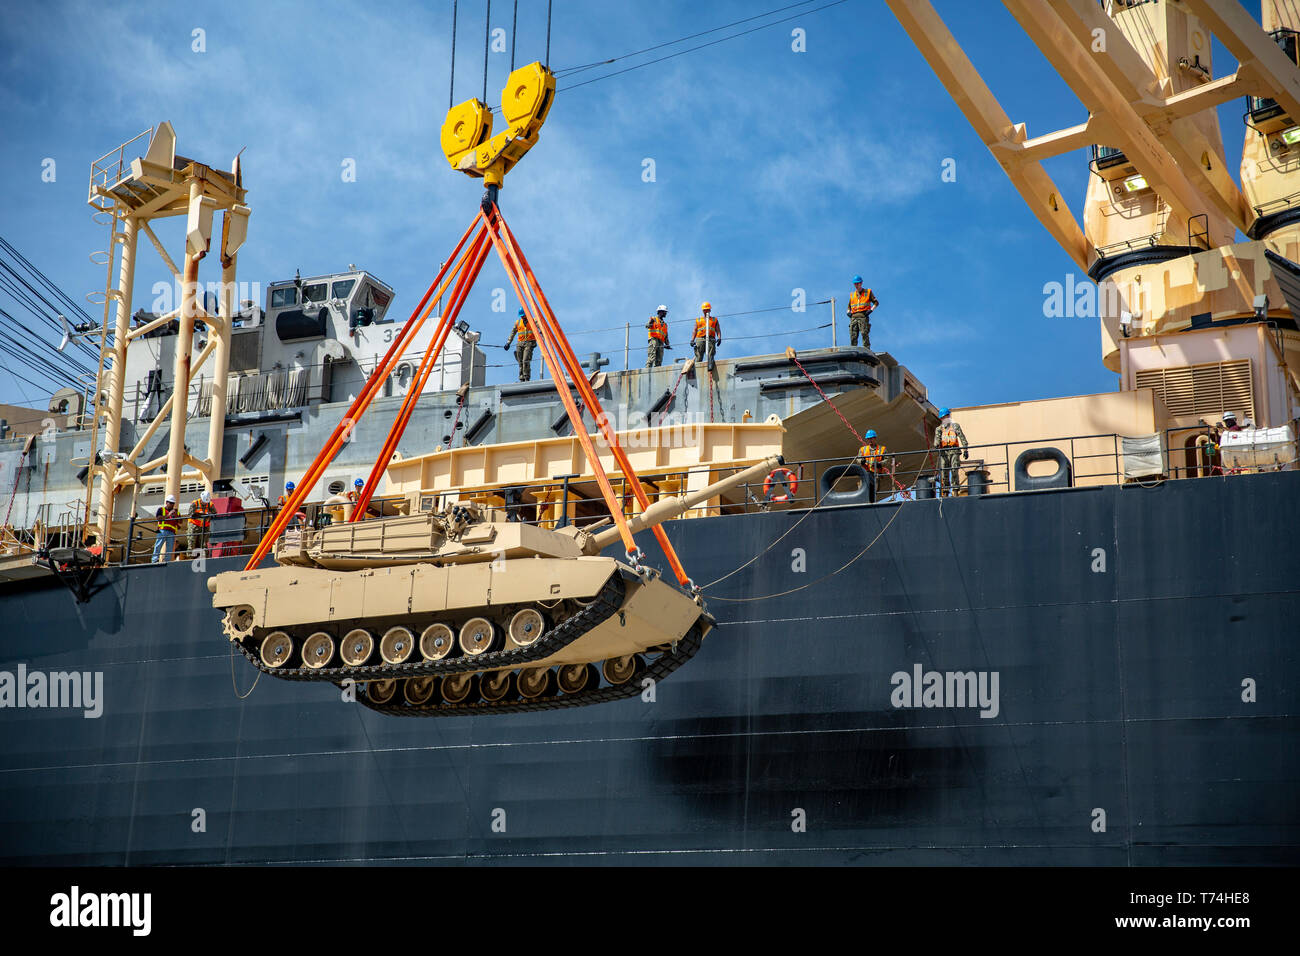 A M1A1 Abrams is loaded on the USNS Sgt. William R. Button during an equipment back-load at Port Hueneme, Calif., as part of Exercise Pacific Blitz 19, March 12. Pacific Blitz 19 is designed to train Marines and Sailors in maritime prepositioning force operations and aims to increase proficiency, expand levels of cooperation and to enhance maritime capabilities. (U.S. Marine Corps photo by Cpl. Jacob A. Farbo) - Stock Image